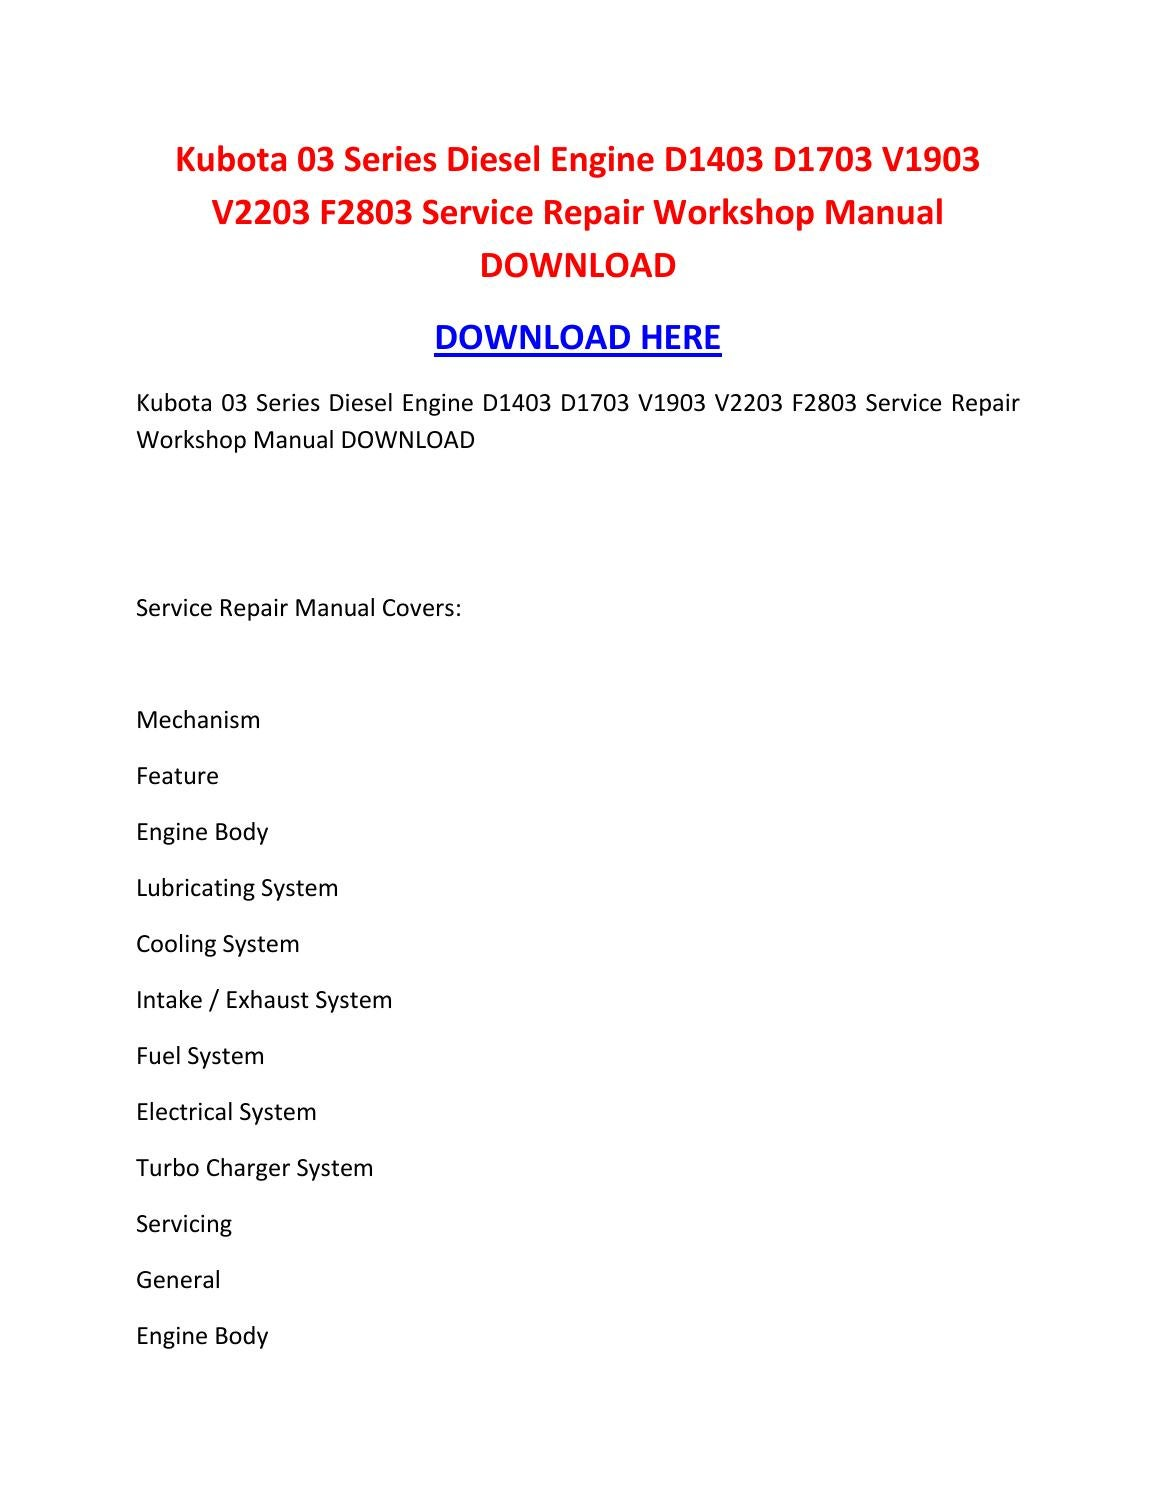 Kubota 03 series diesel engine d1403 d1703 v1903 v2203 f2803 service repair  workshop manual download by suzettespoonerowqbdt - issuu